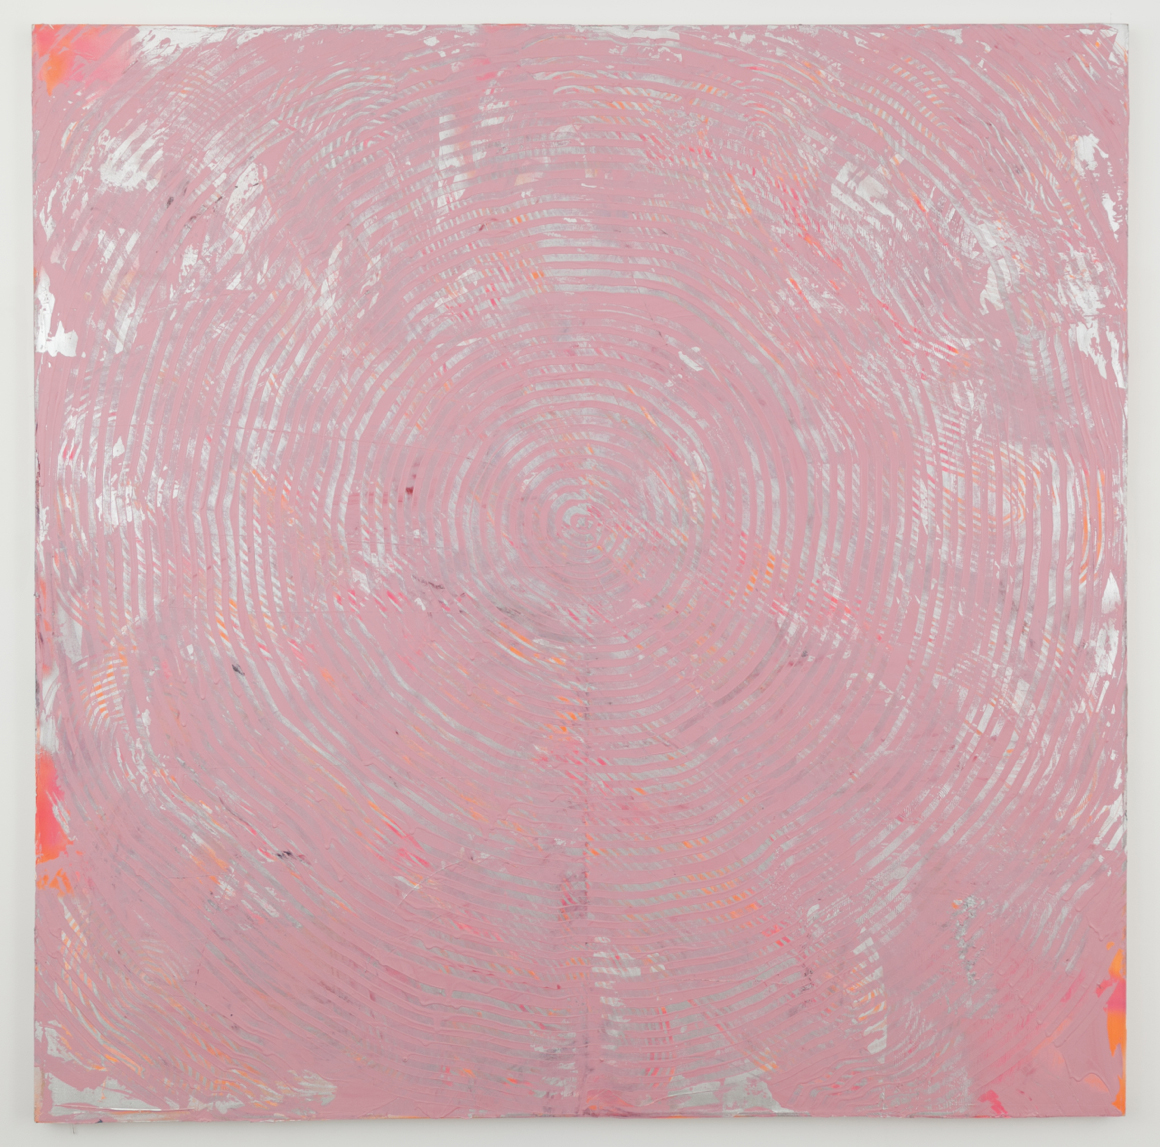 <p><em>Pink and Silver</em><span class='media'>acrylic and spray paint on canvas</span>72 x 72in<br>2014<br><a class='inquire' href='mailto:info@gildargallery.com?subject=Artwork Inquiry ABAT0006&body=I am interested in finding out more about Pink and Silver by Adam Bateman'>Inquire</a></p>